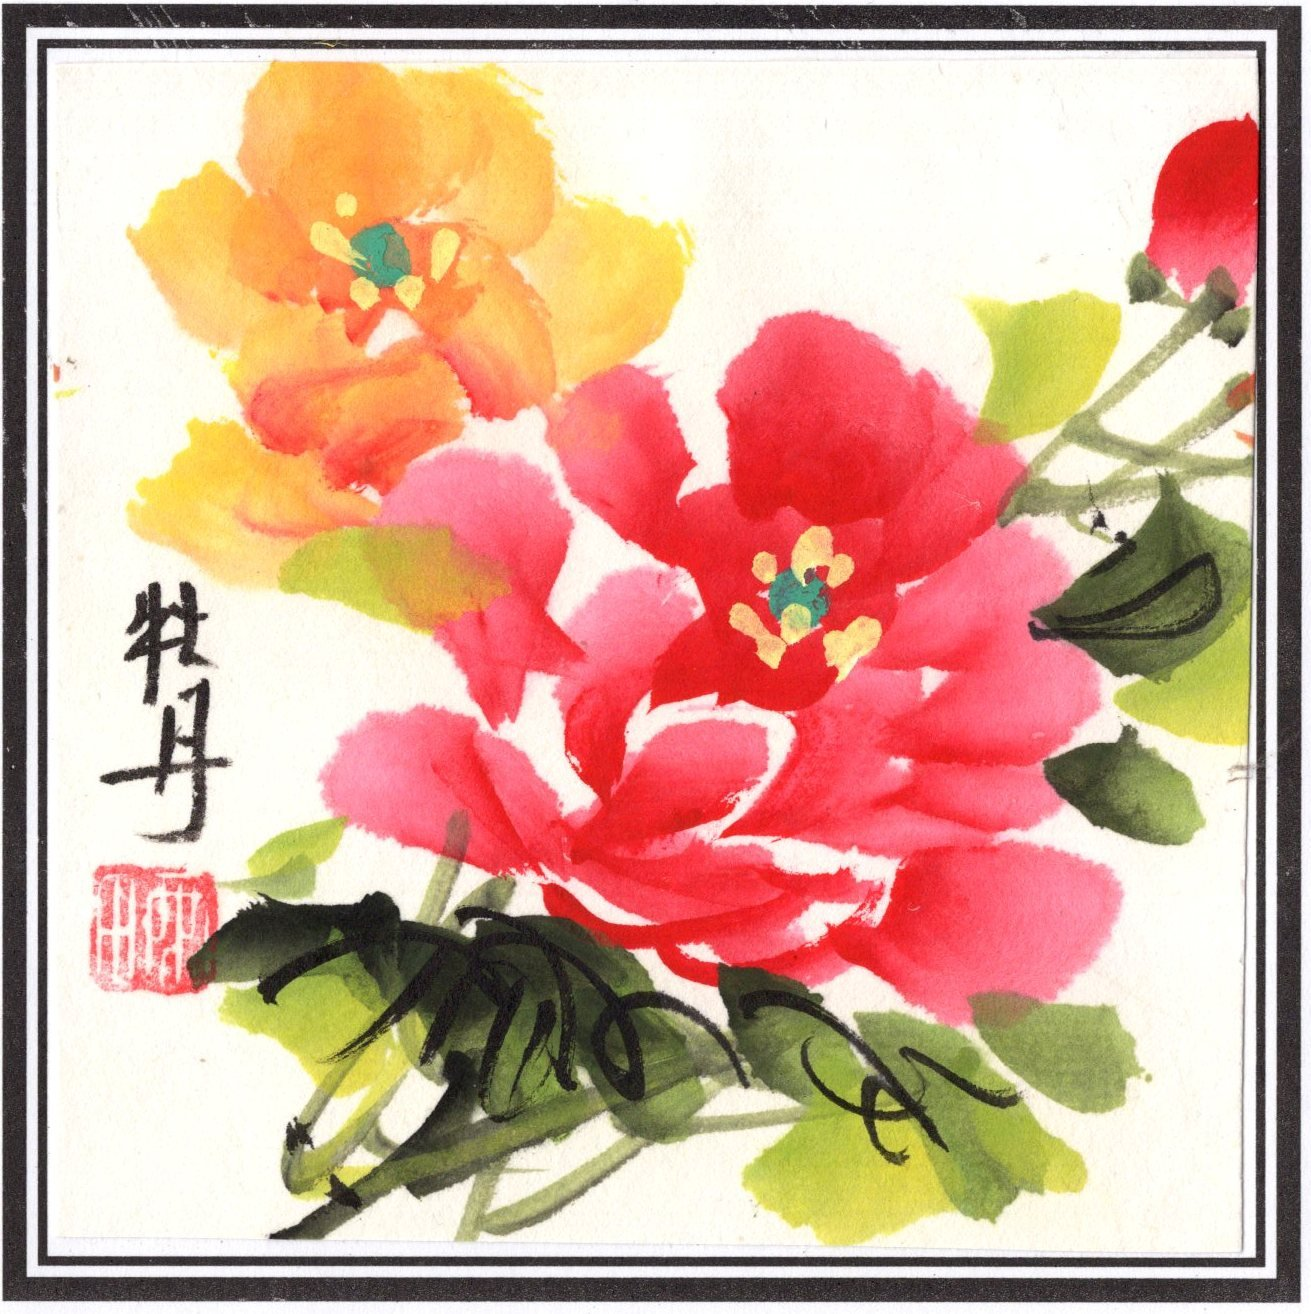 Chinese Miniature Floral Brush Painting Handmade Watercolor Ethnic Flower Art